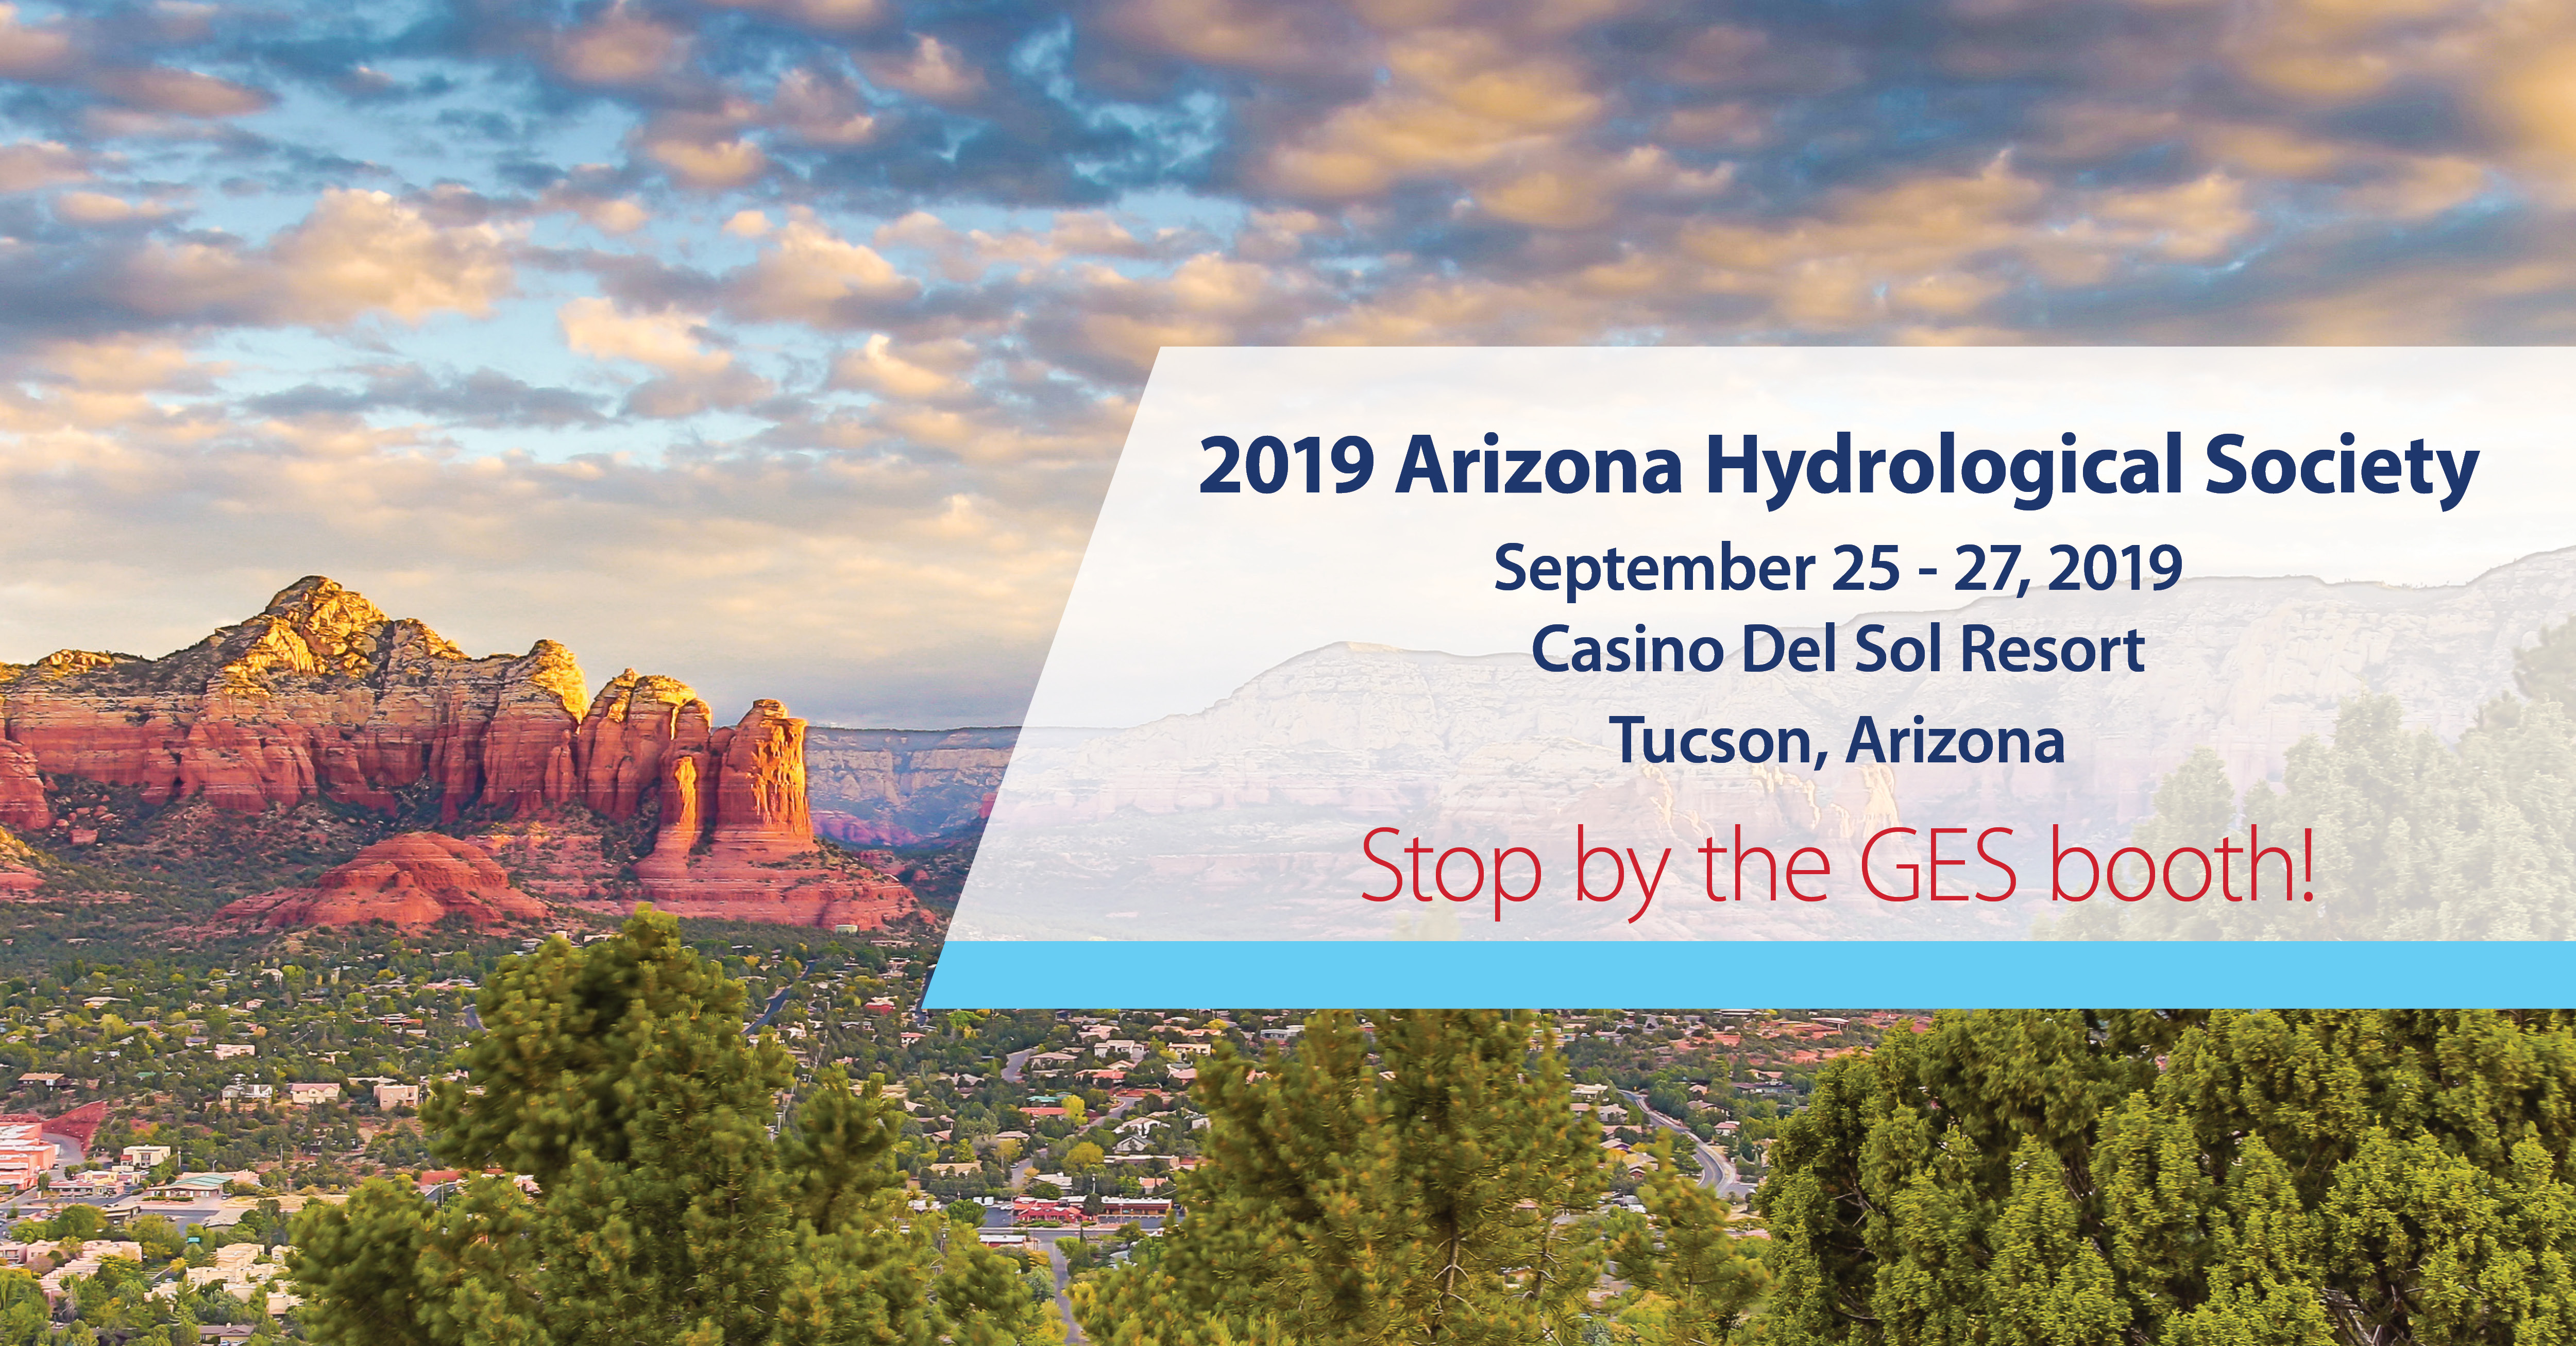 Arizona Hydrological Society